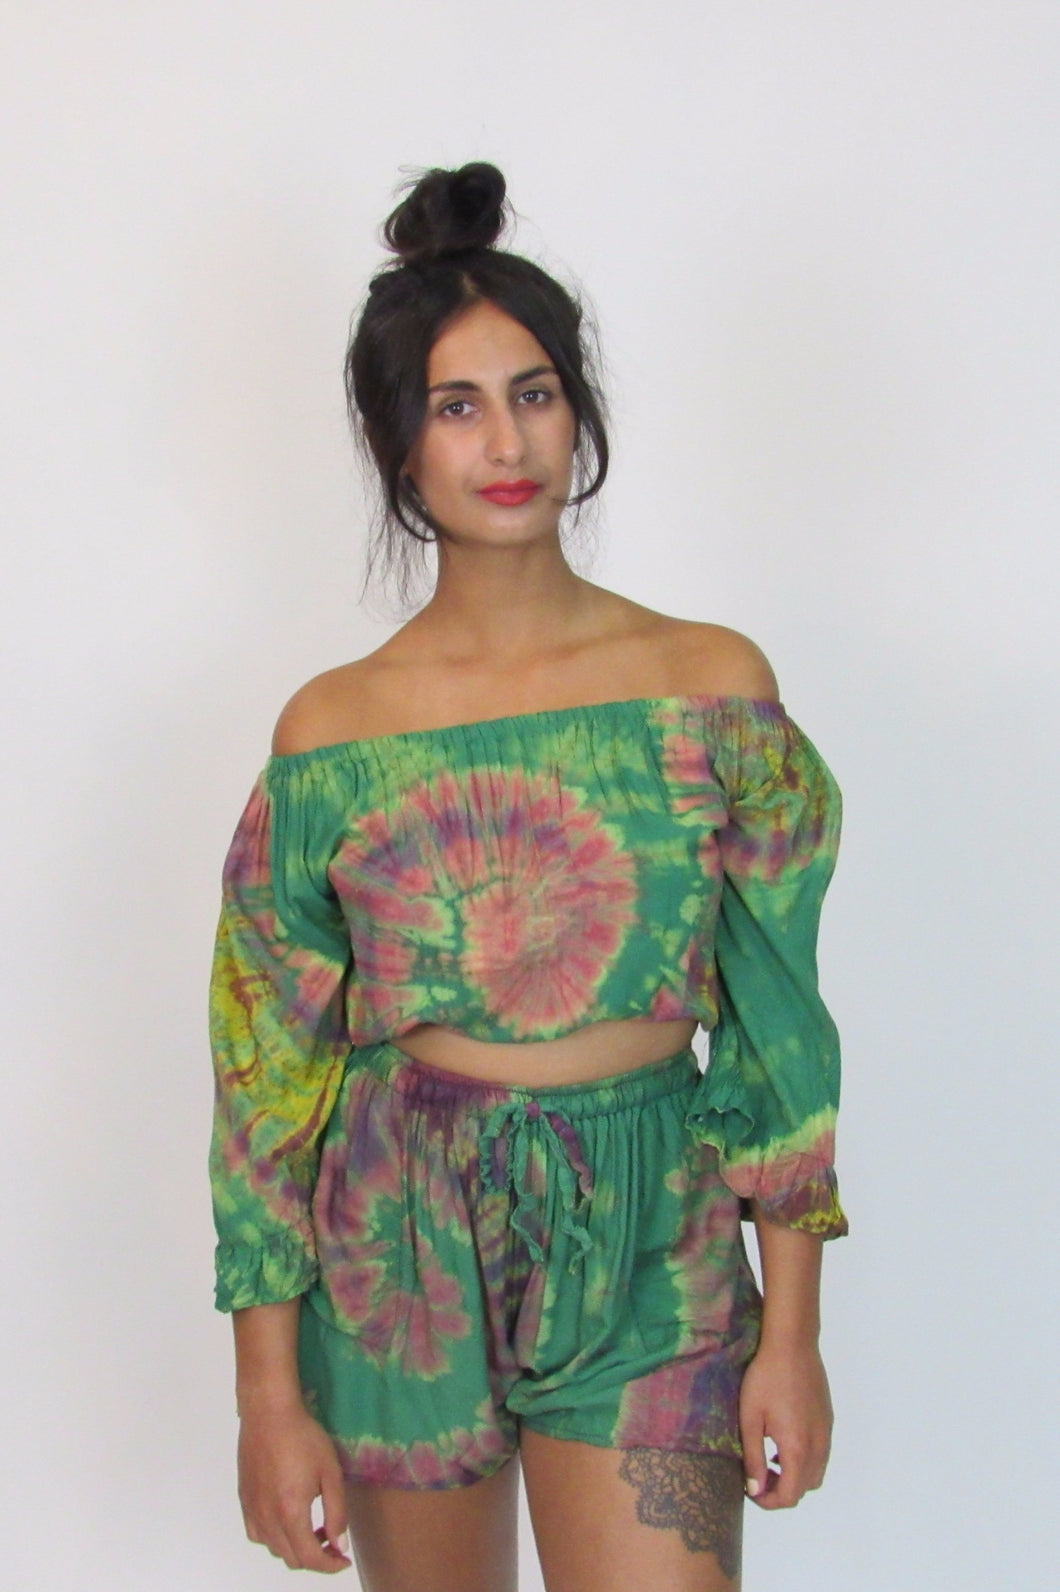 Green tie dye co-ord